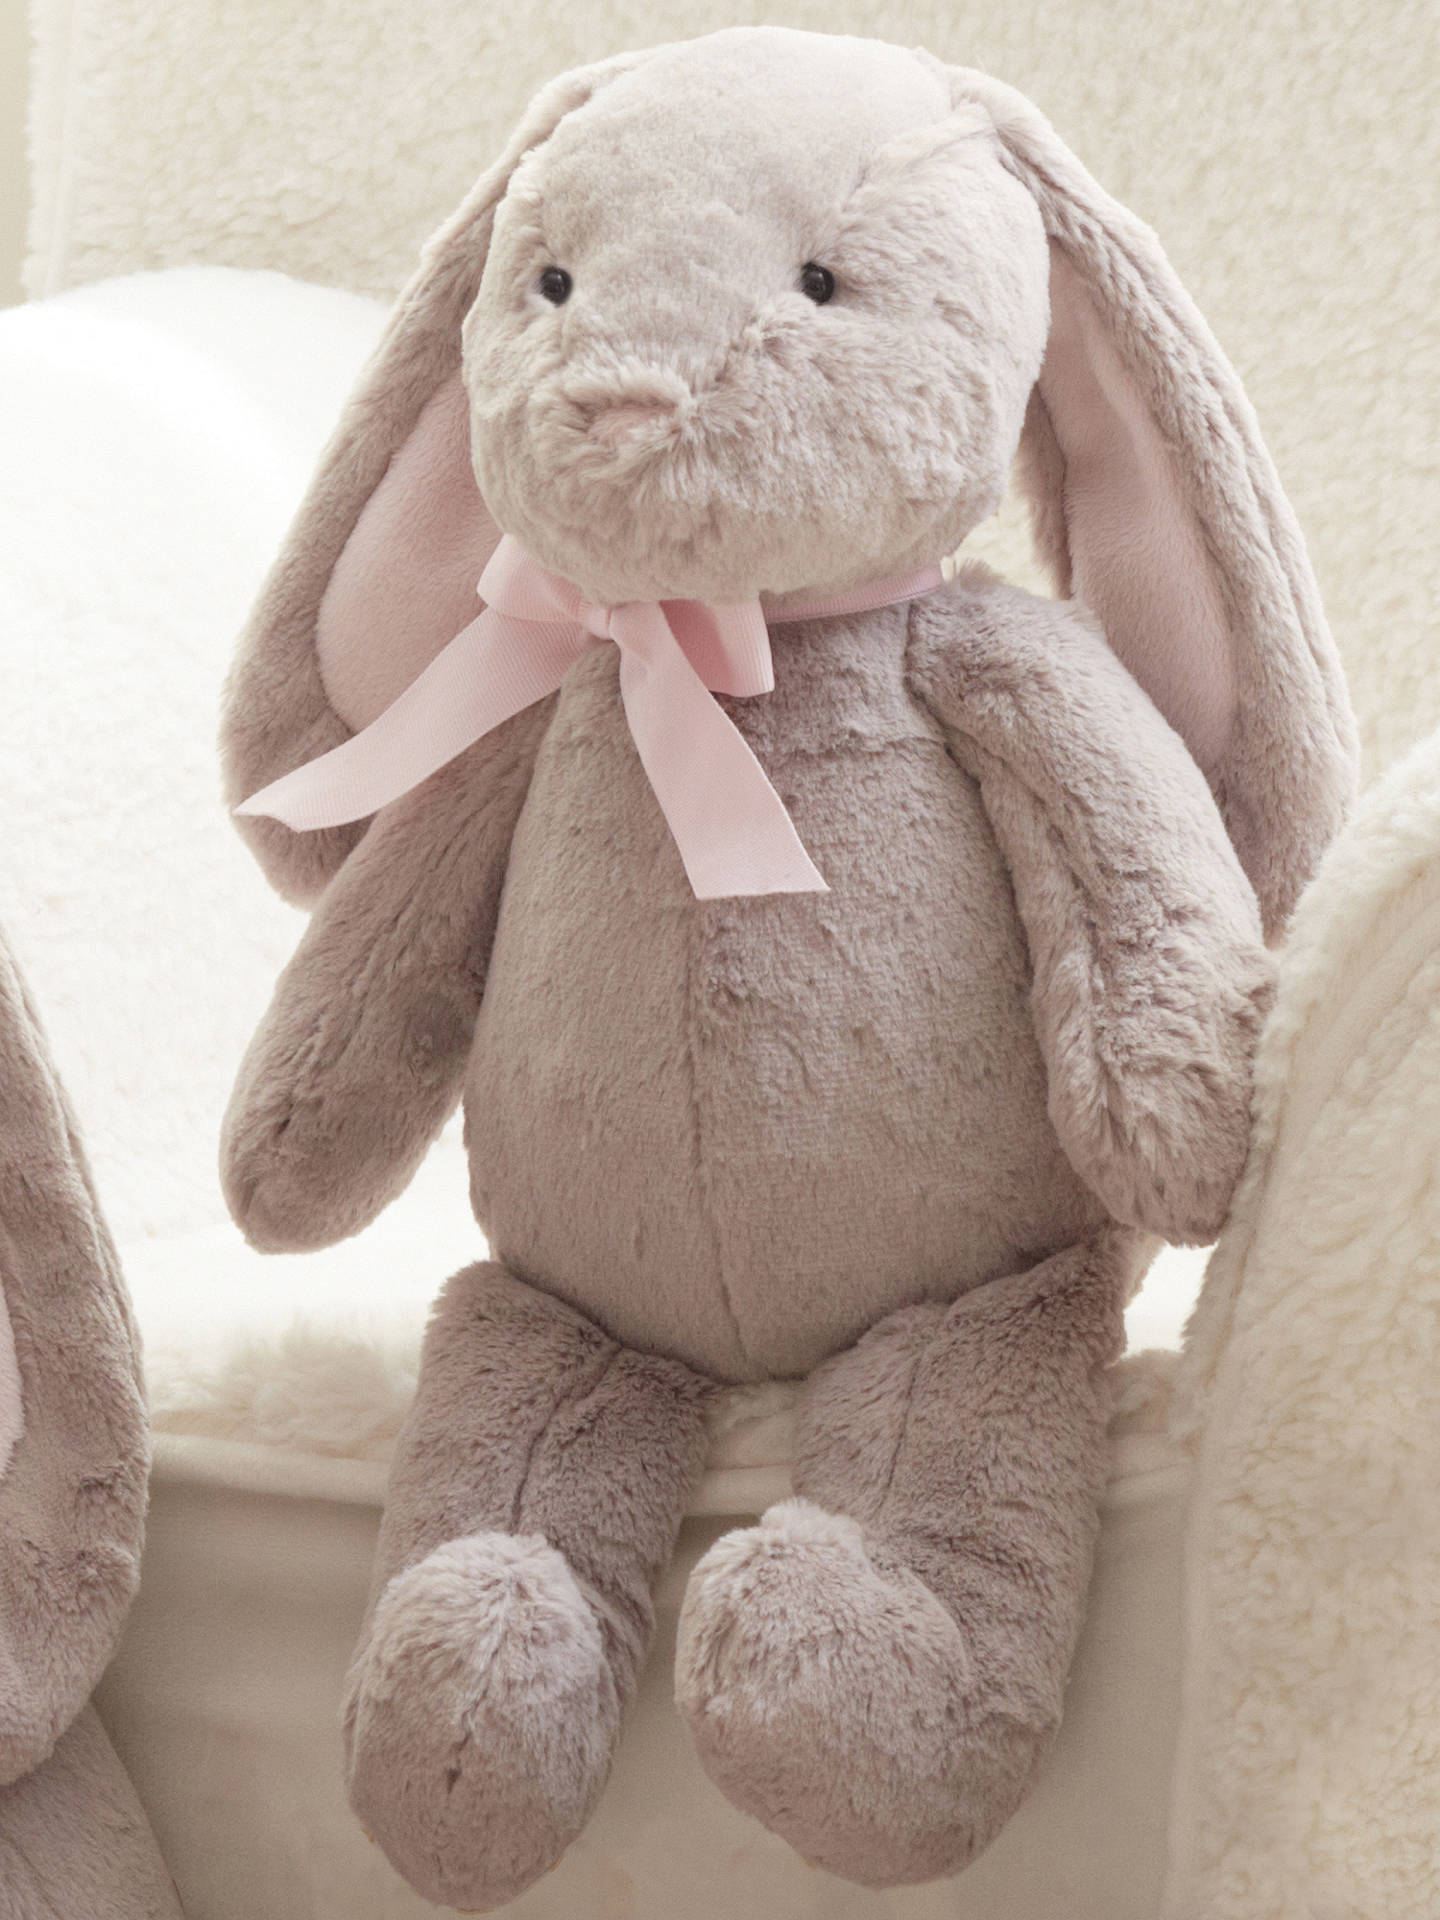 Buy Pottery Barn Kids Plush Bunny Soft Toy, Medium Online at johnlewis.com